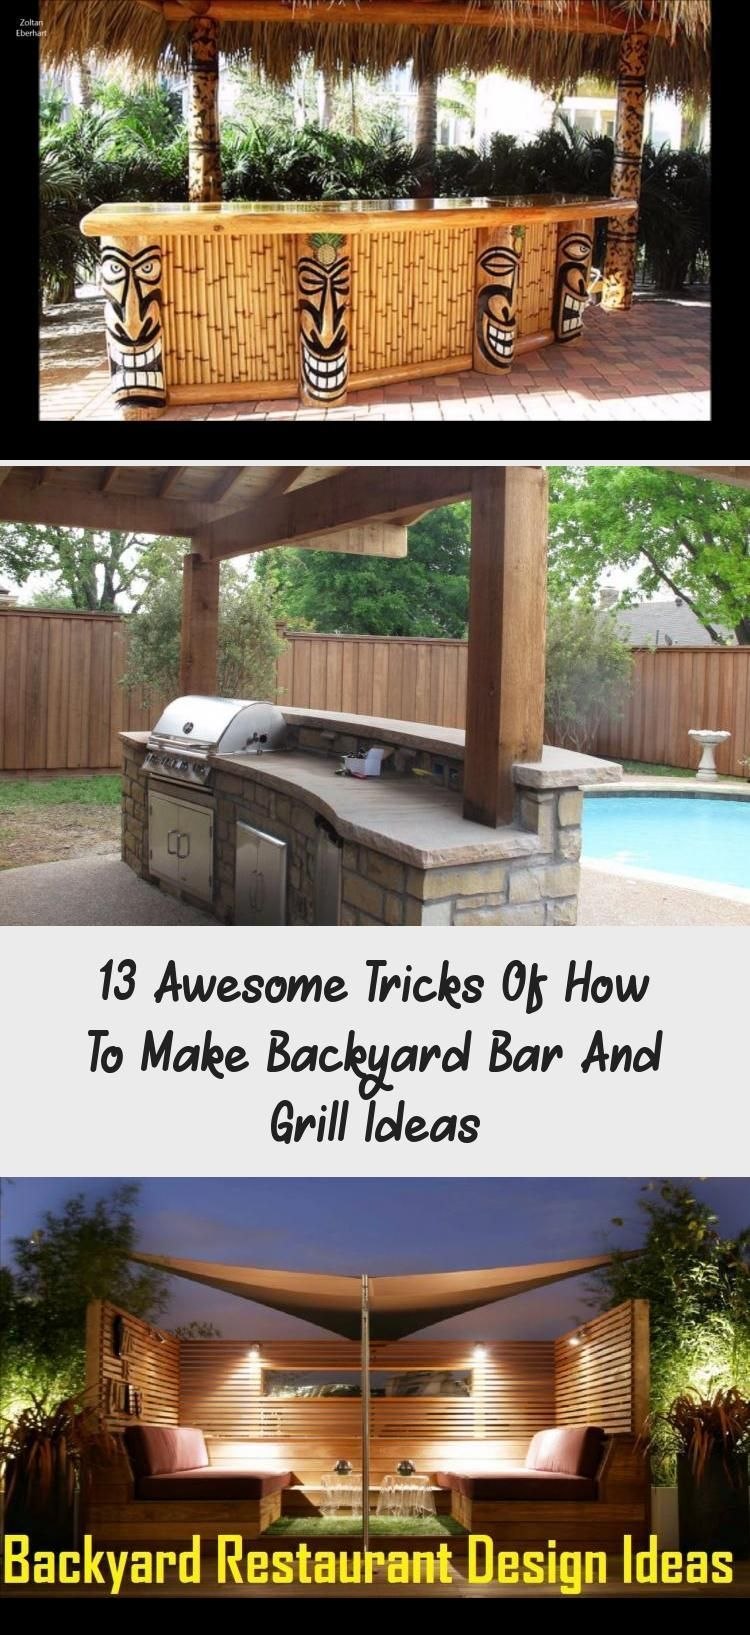 13 Awesome Tricks Of How To Make Backyard Bar And Grill Ideas Modern Outdoor K Awesome Back Backyard Bar Modern Outdoor Kitchen Outdoor Kitchen Lighting Modern backyard bar ideas